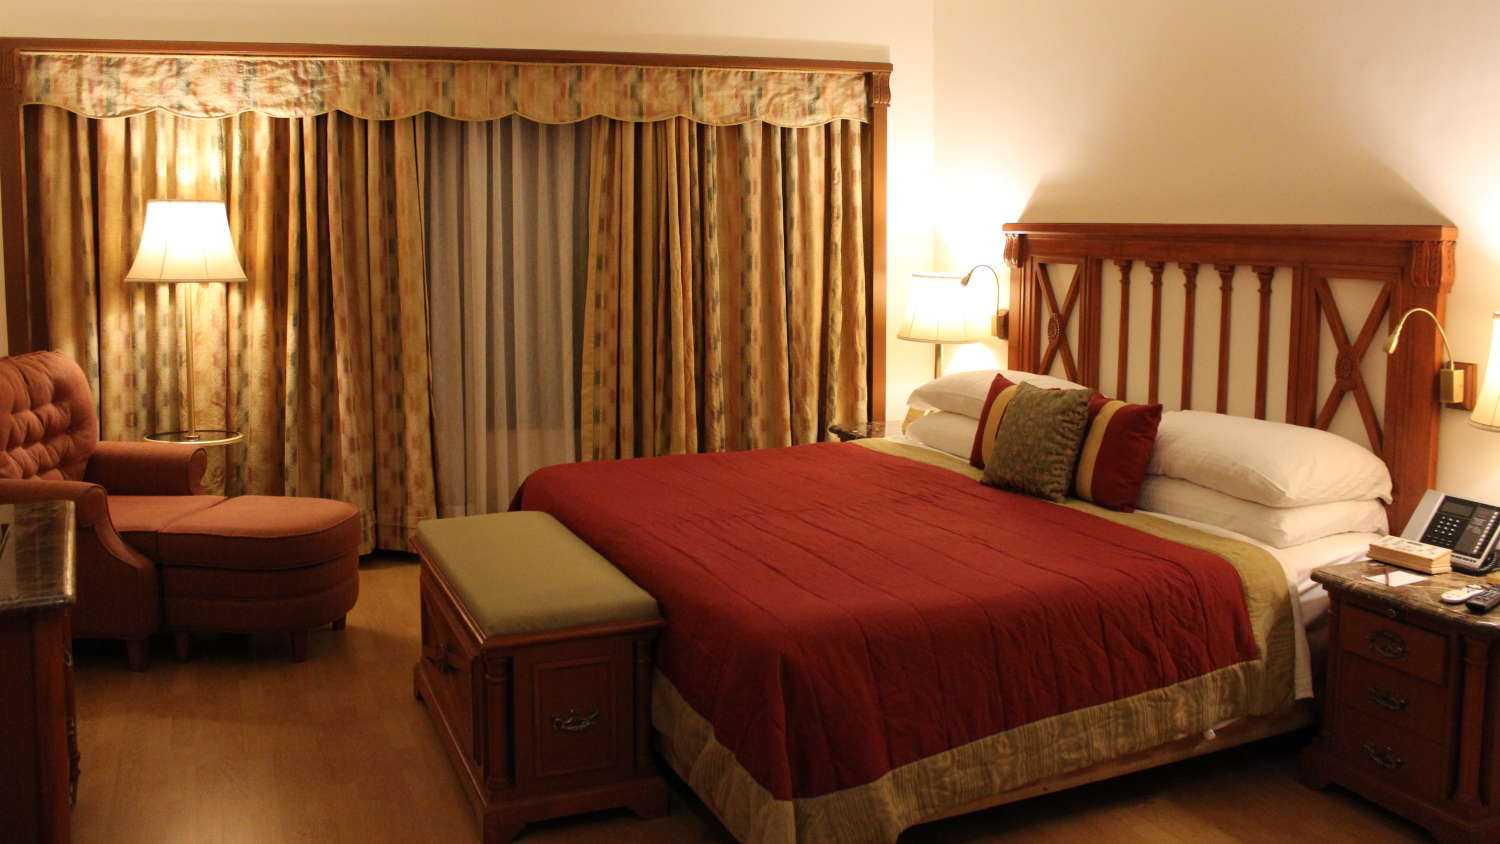 Hotel near domastic airport hotel hotel near by airport veg hotel - Orchid Hotel Mumbai Vile Parle